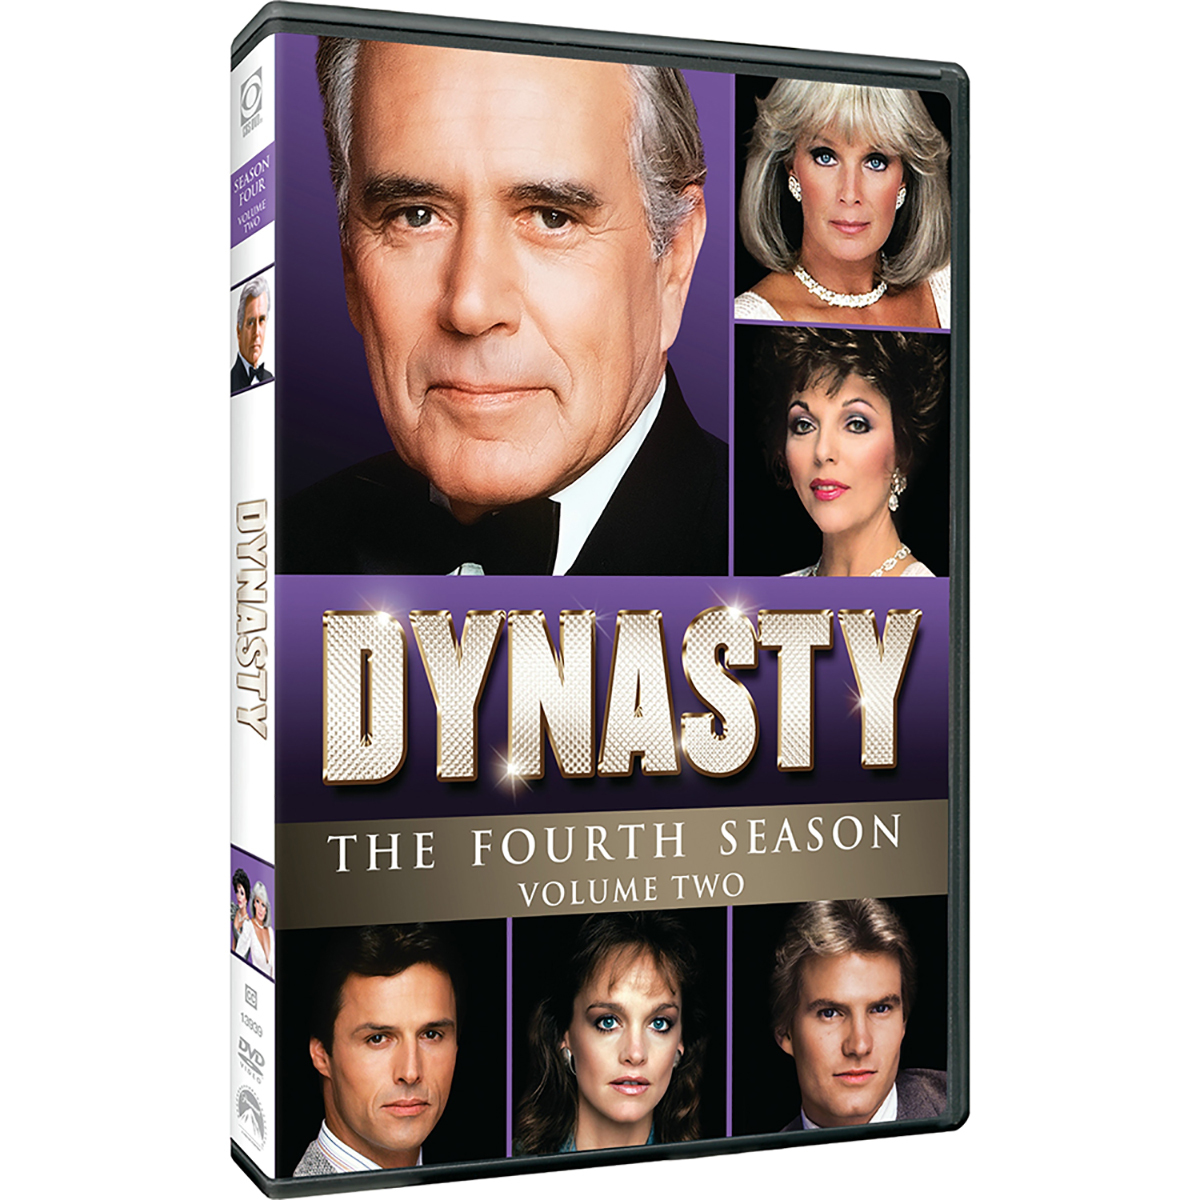 Dynasty: Season 4 - Volume 2 DVD -  DVDs & Videos 6445-319261